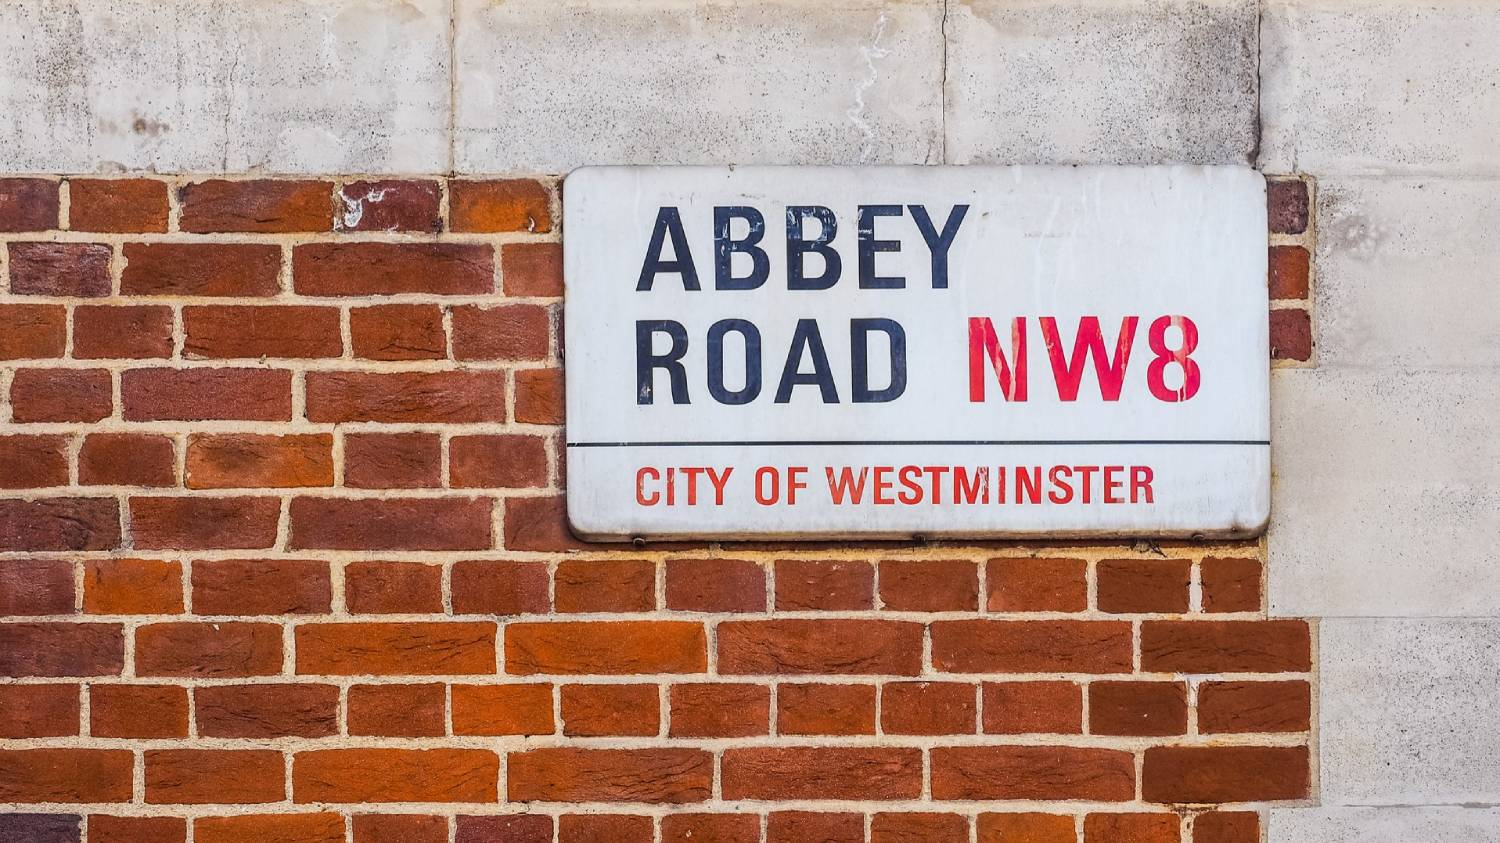 Abbey Road - Things To Do In London